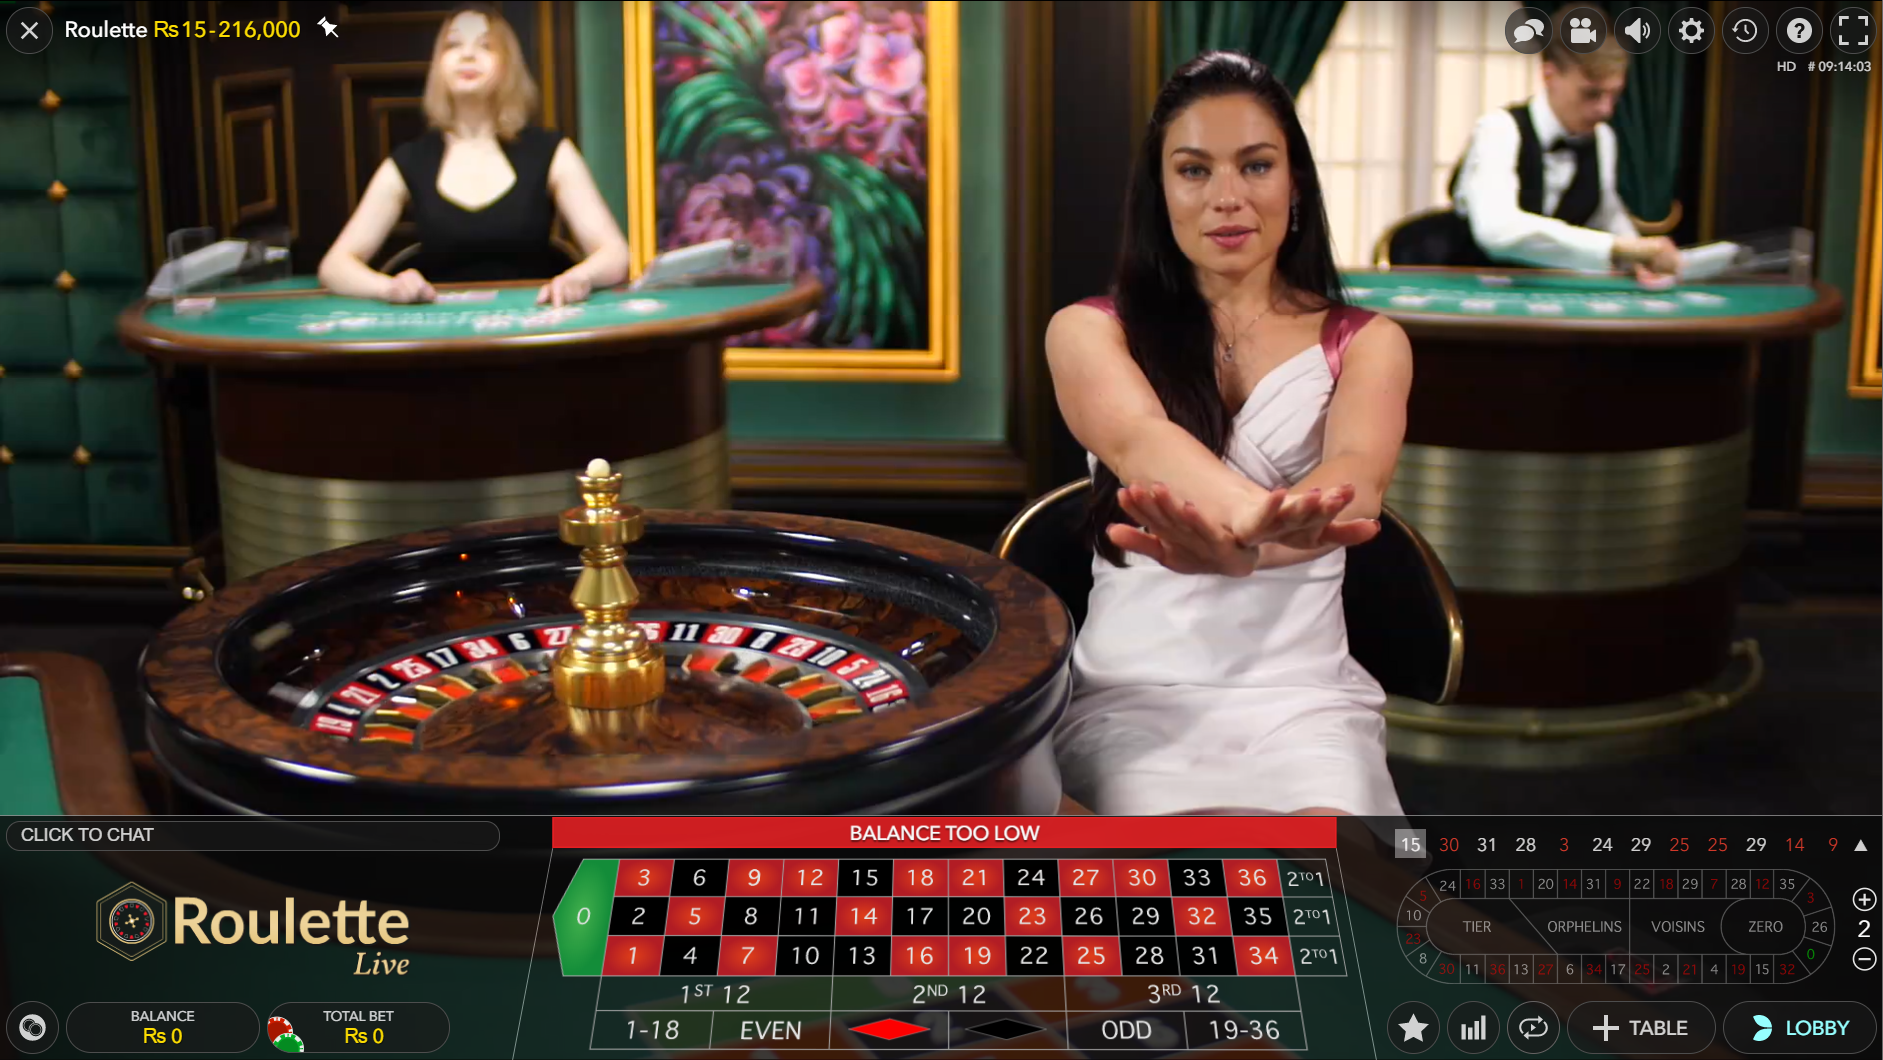 The most popular live casino game Roulette being played in the live casino at Dafabet